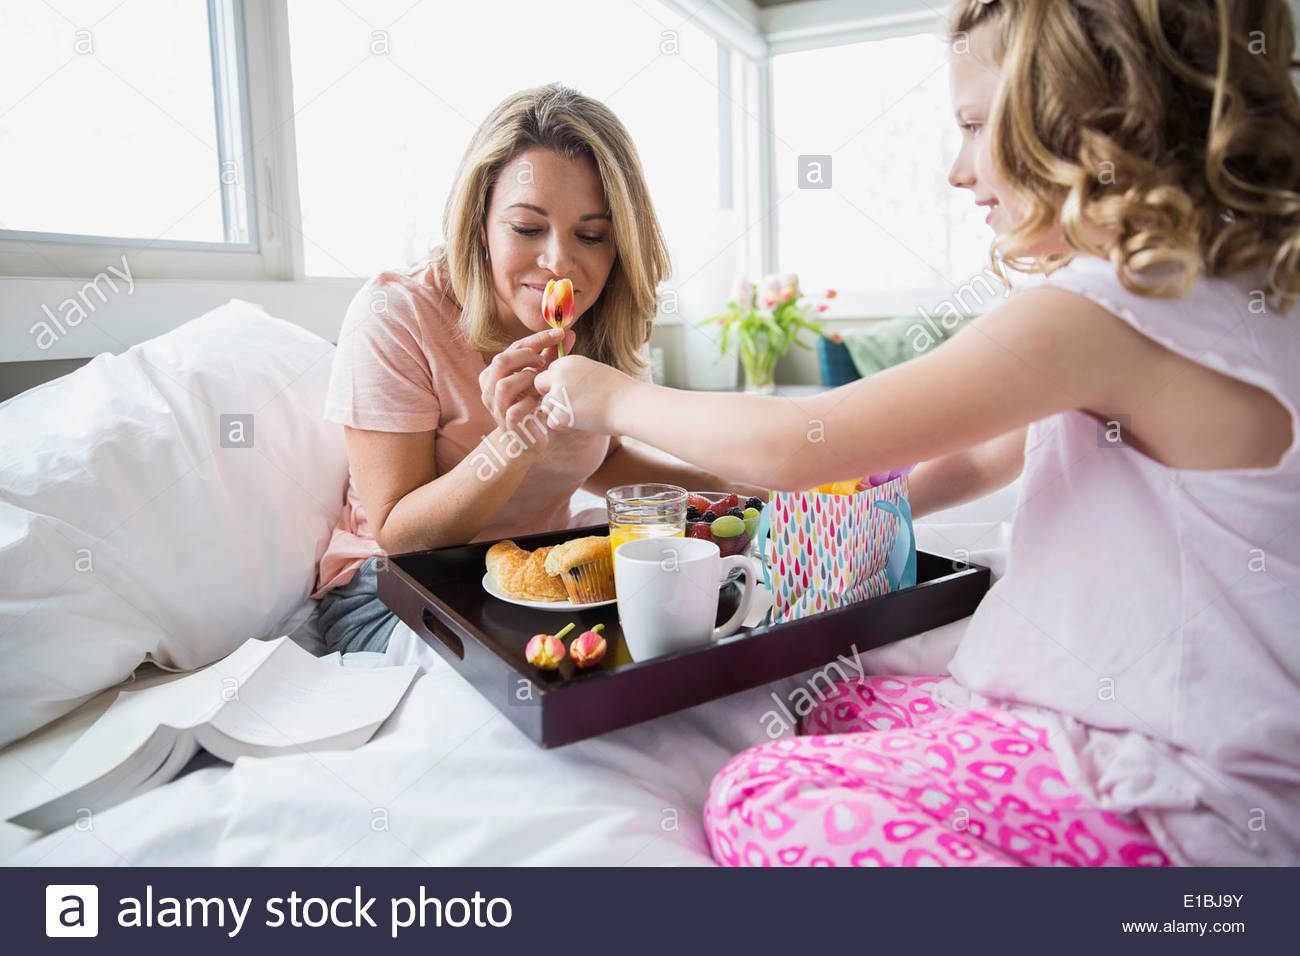 Daughter bringing breakfast to mother in bed - Stock Image